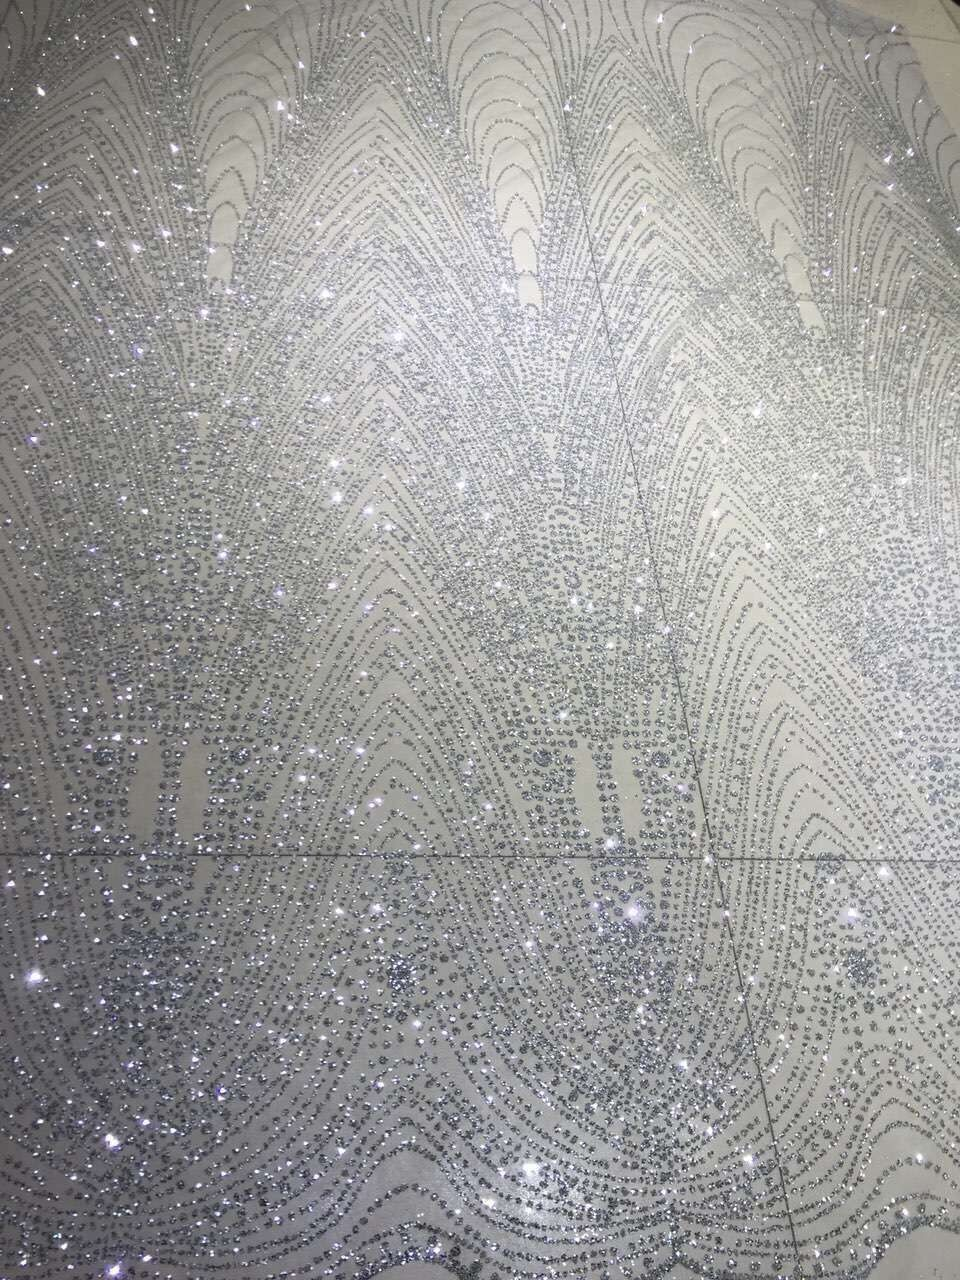 Silver embroidery glitter mesh tulle lace for evening dress L2391 1 fashion  design for wedding dress-in Lace from Home   Garden on Aliexpress.com  5b64eb398e20